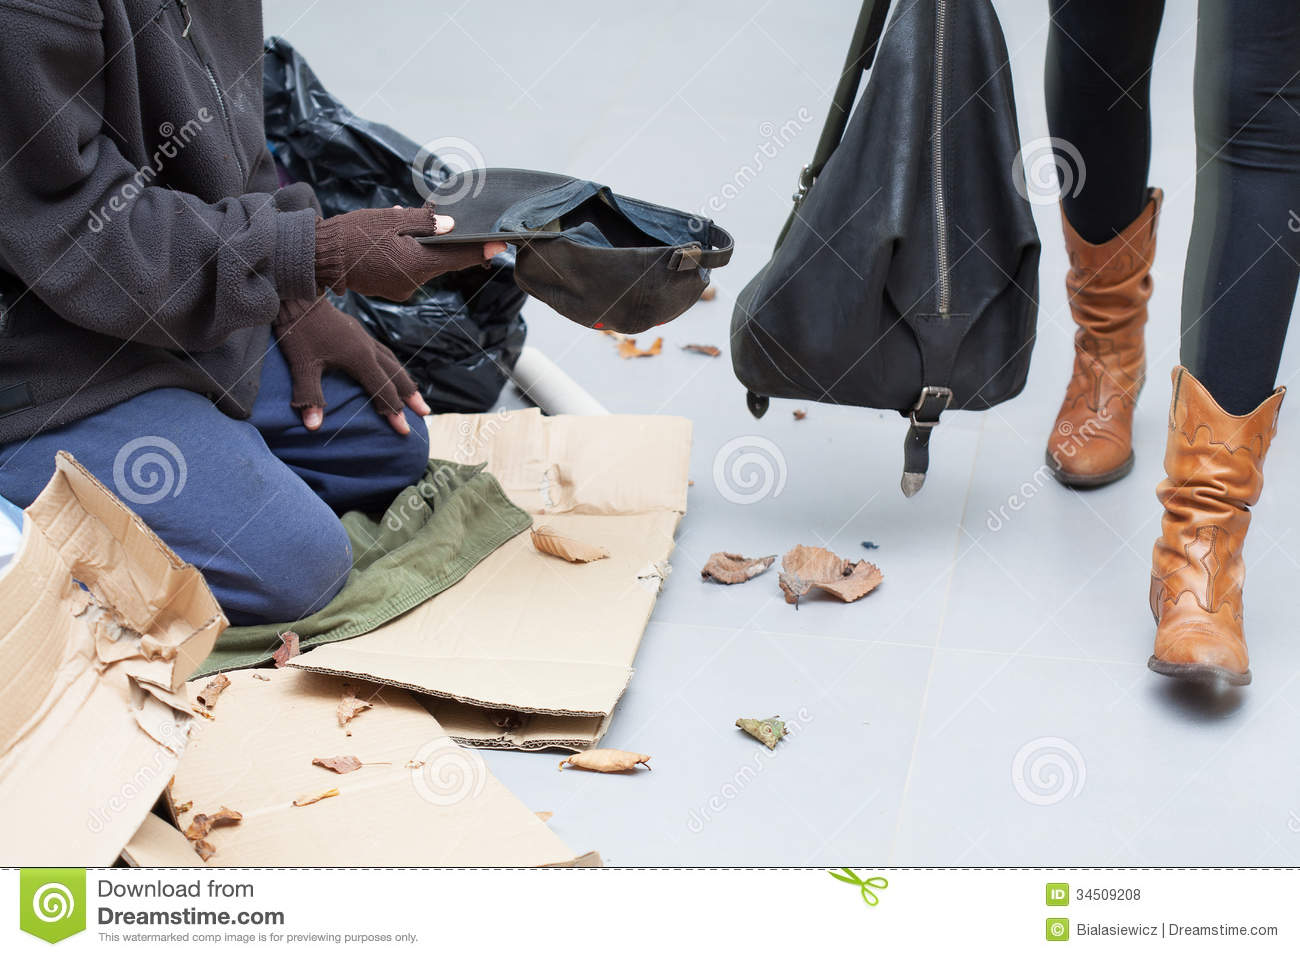 homeless-man-begging-money-street-person-alms-people-34509208